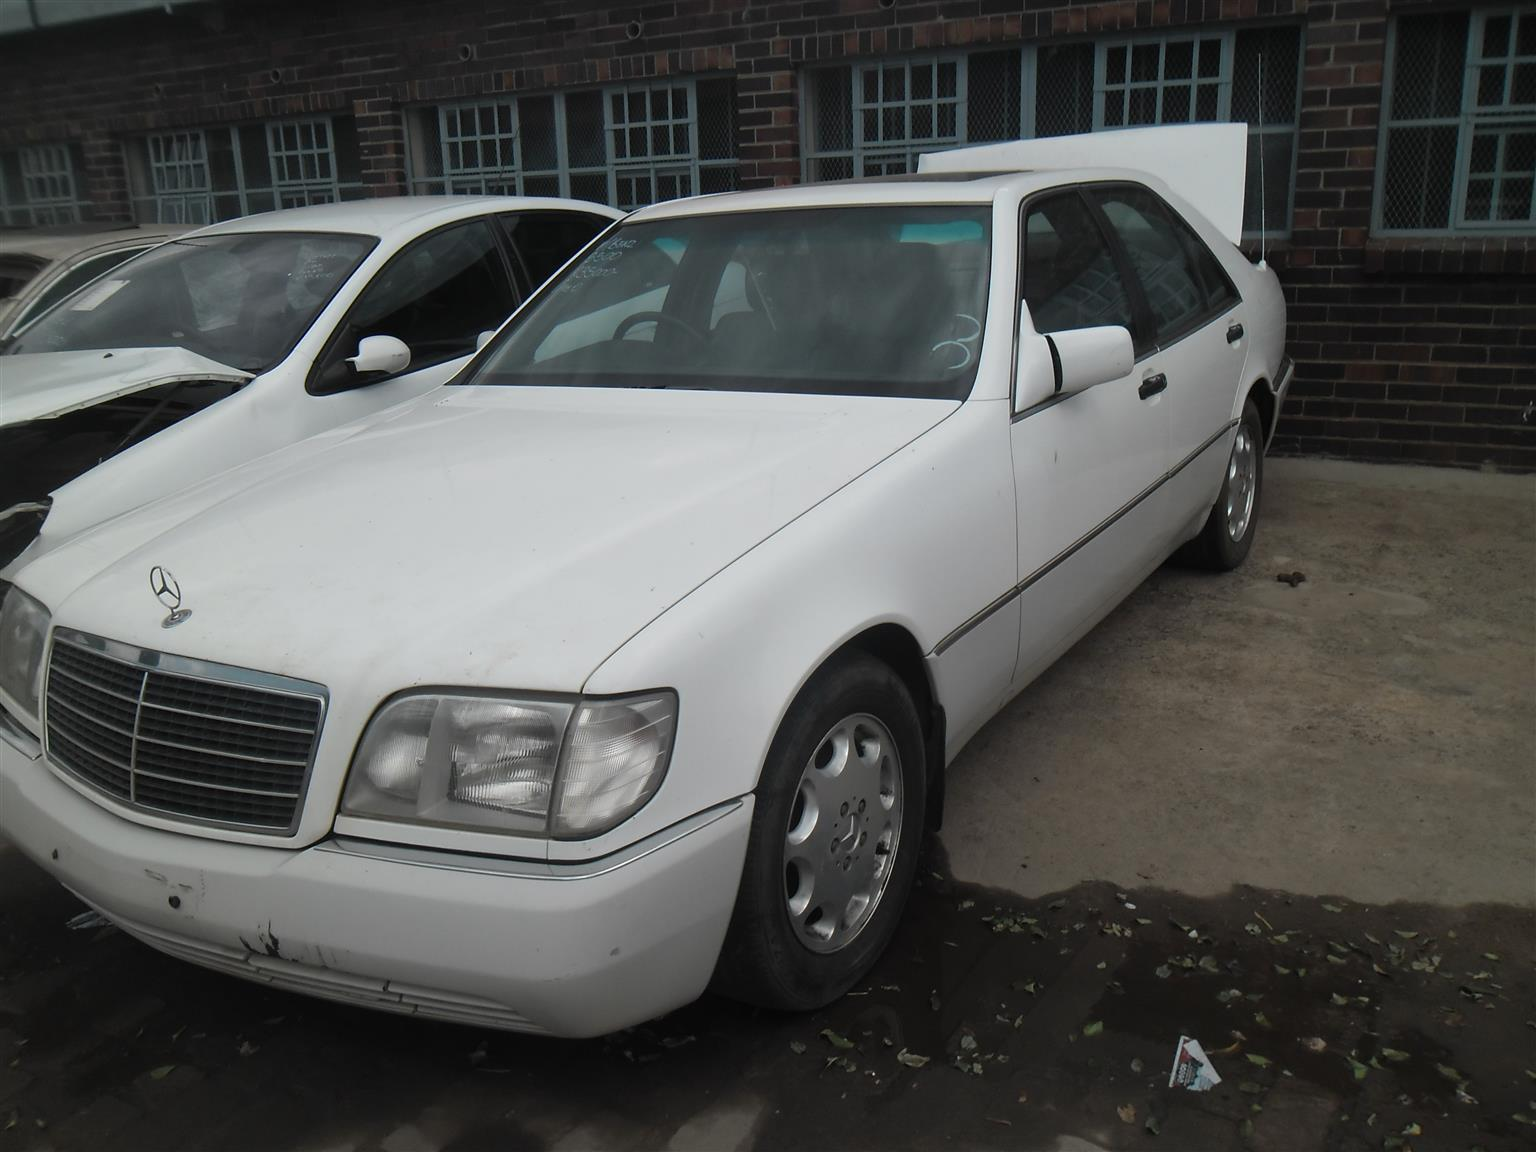 Mercedes benz s500 w140 stripping for spares gearbox for for Spares for mercedes benz